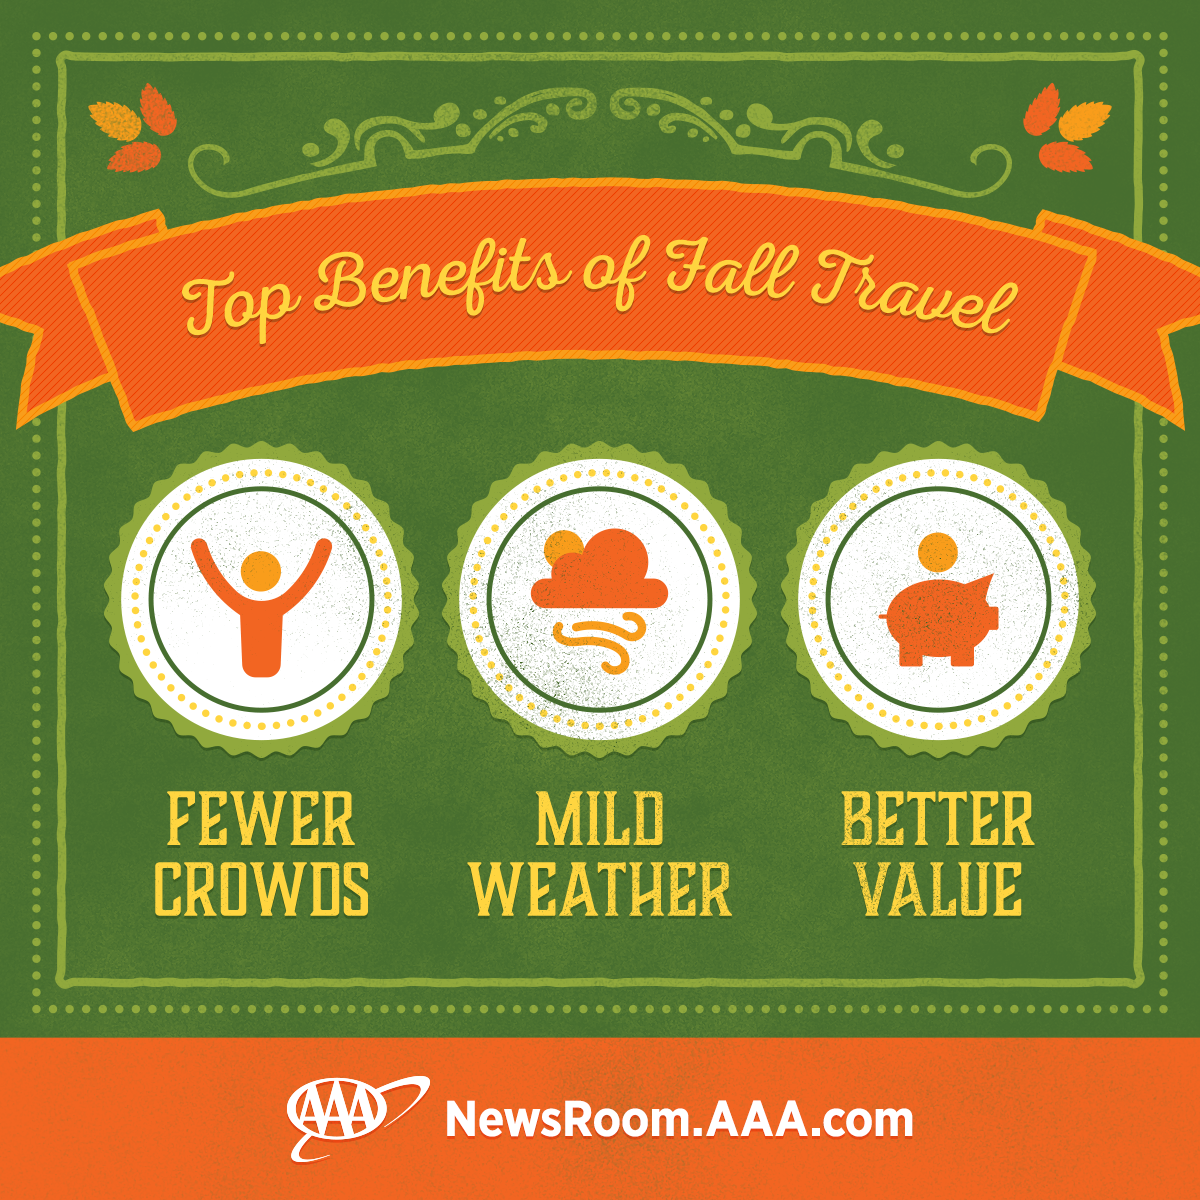 17-0081_Fall-Travel-Infographic_benefits.png